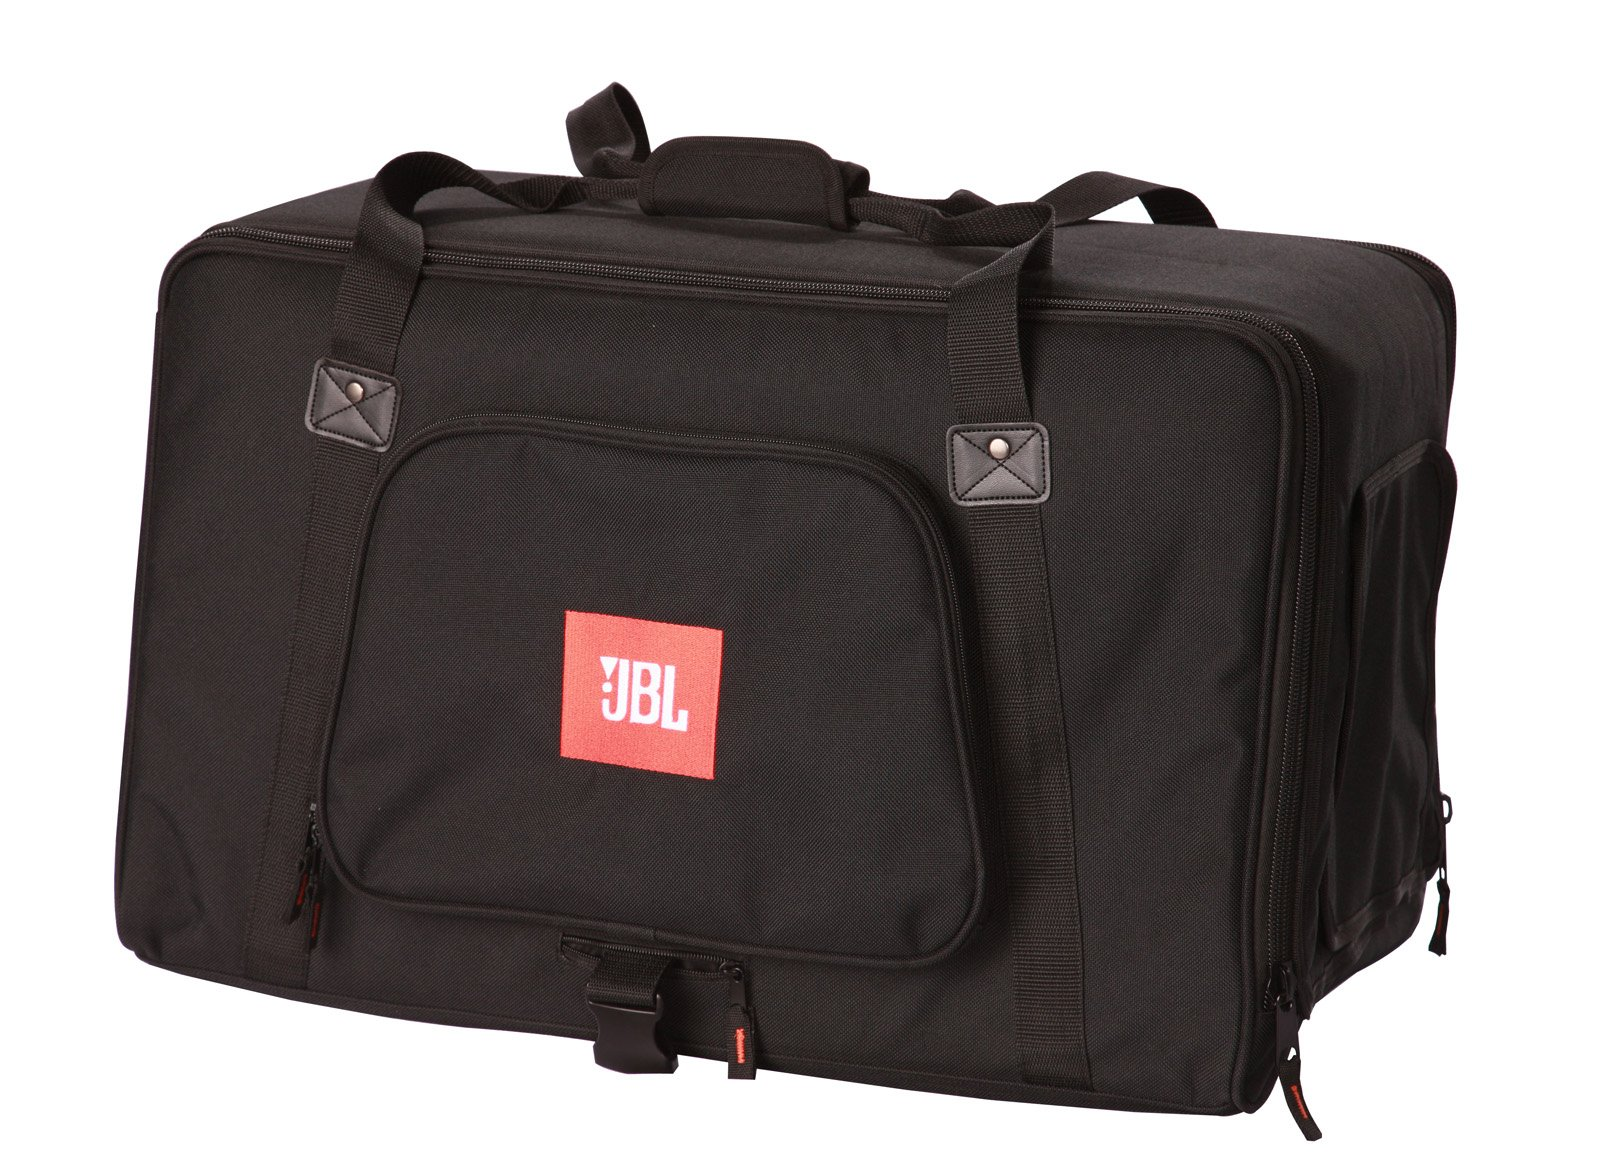 JBL Deluxe Padded Protective Bag for VRX932LA-1 Speaker - Black (VRX932LA-1-BAG)